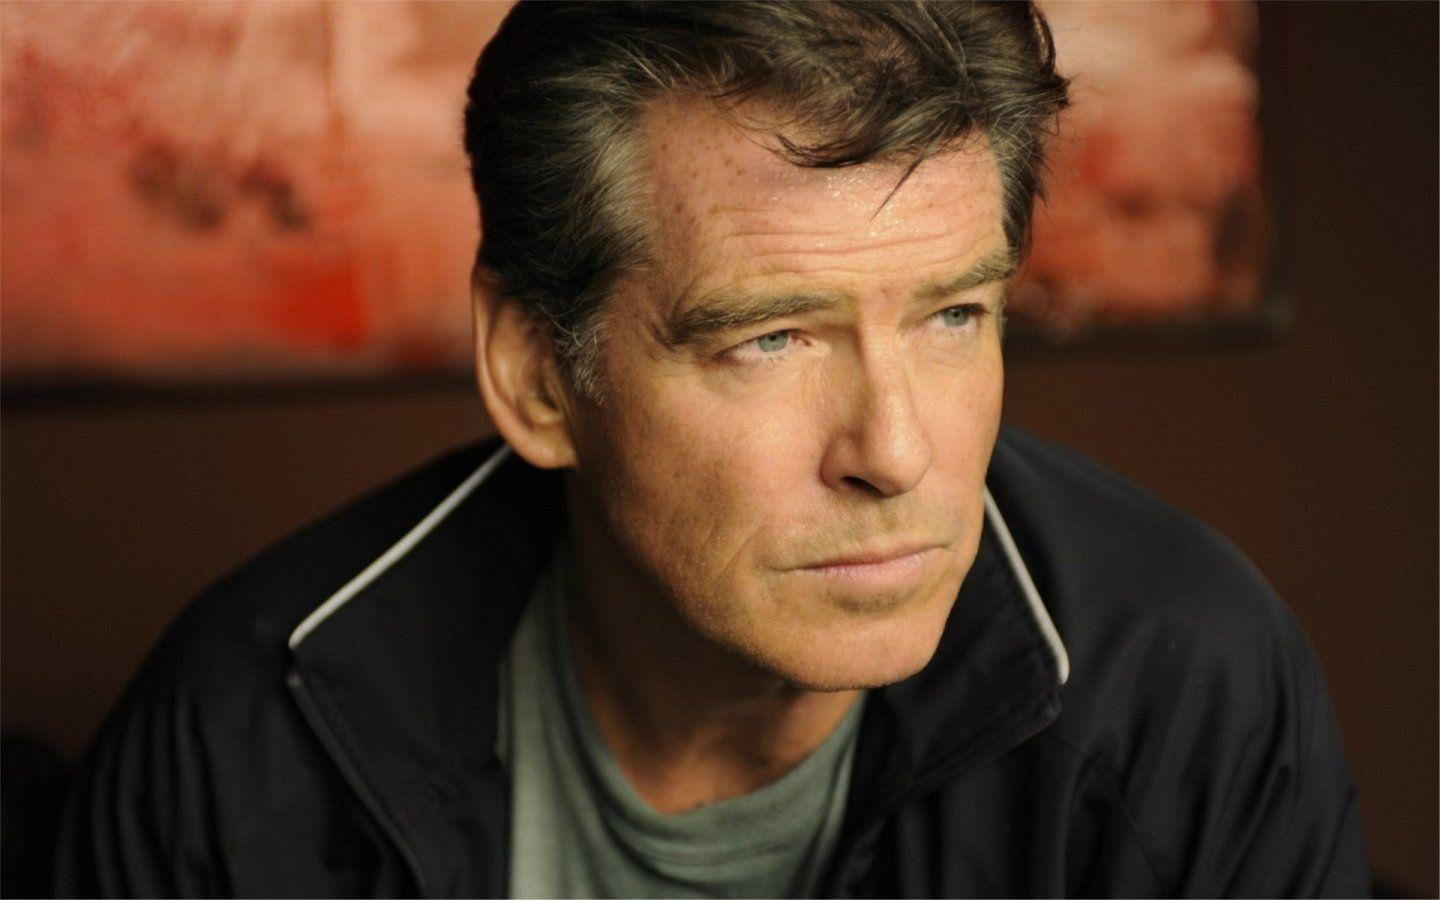 Confused Pierce Brosnan 1440x900 Wallpapers, 1440x900 Wallpapers